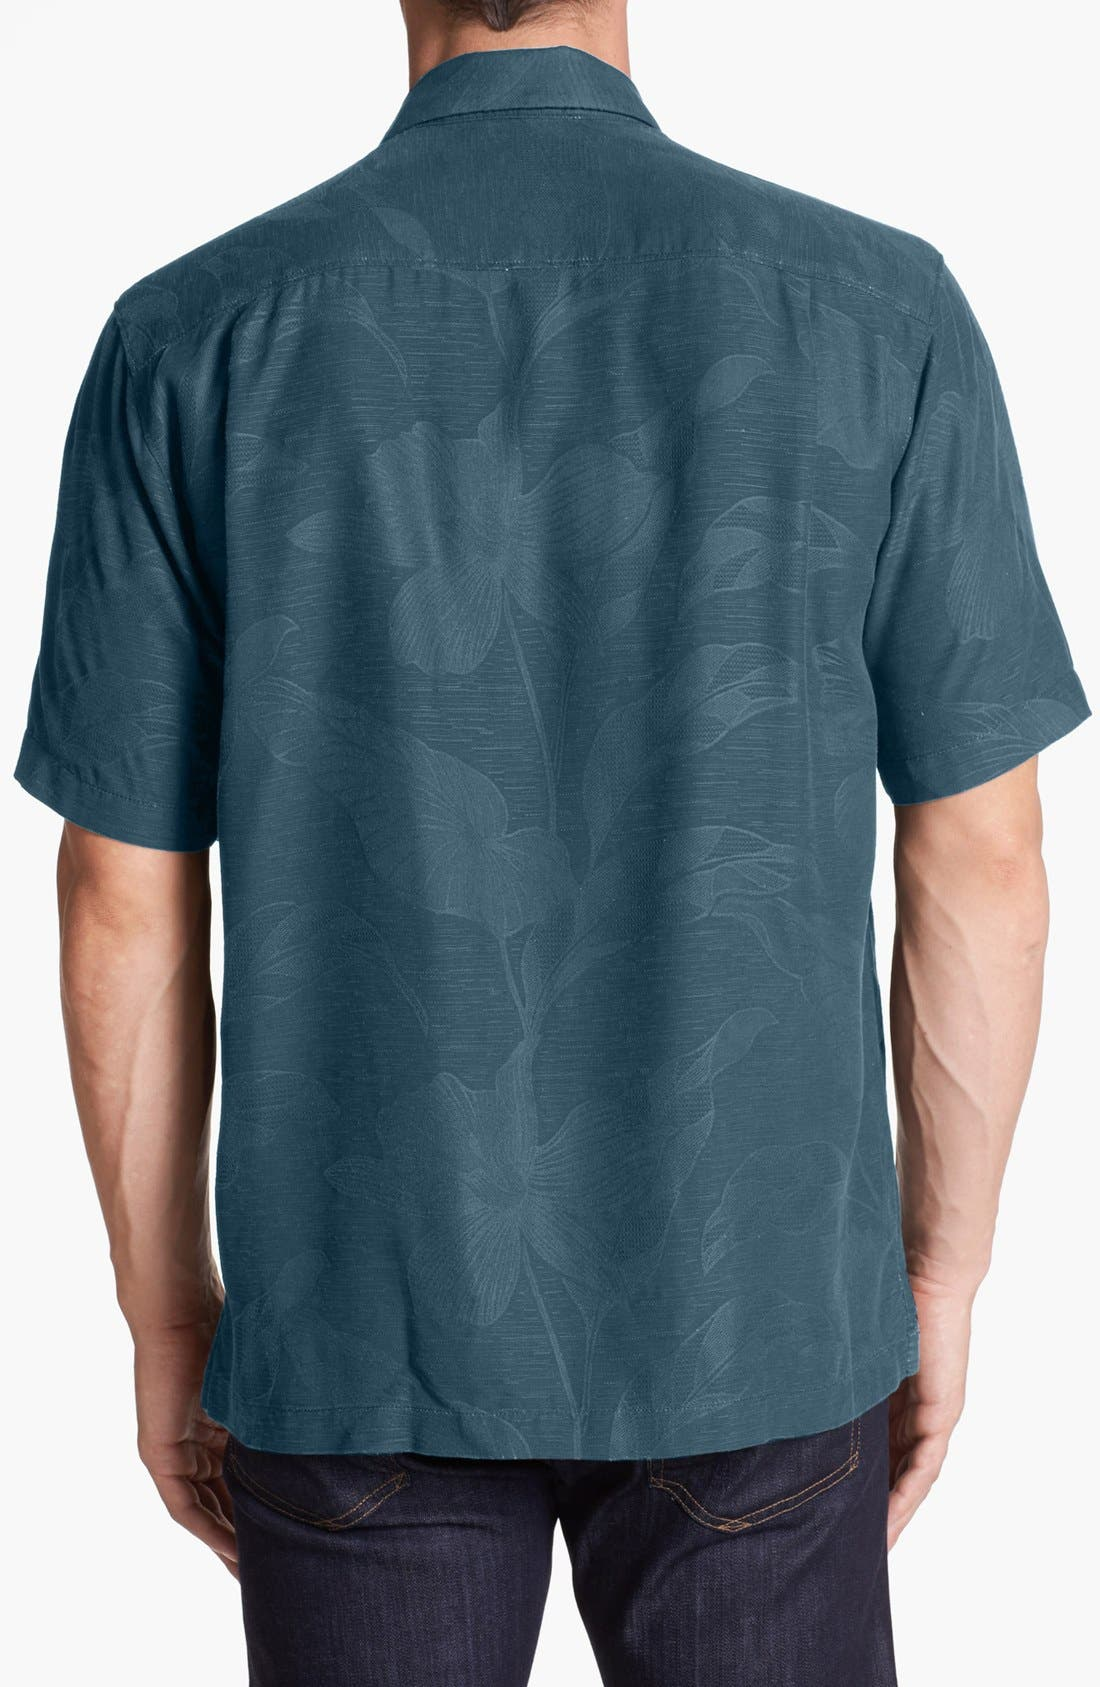 Alternate Image 2  - Tommy Bahama 'Tropic of Parallel' Campshirt (Big & Tall)